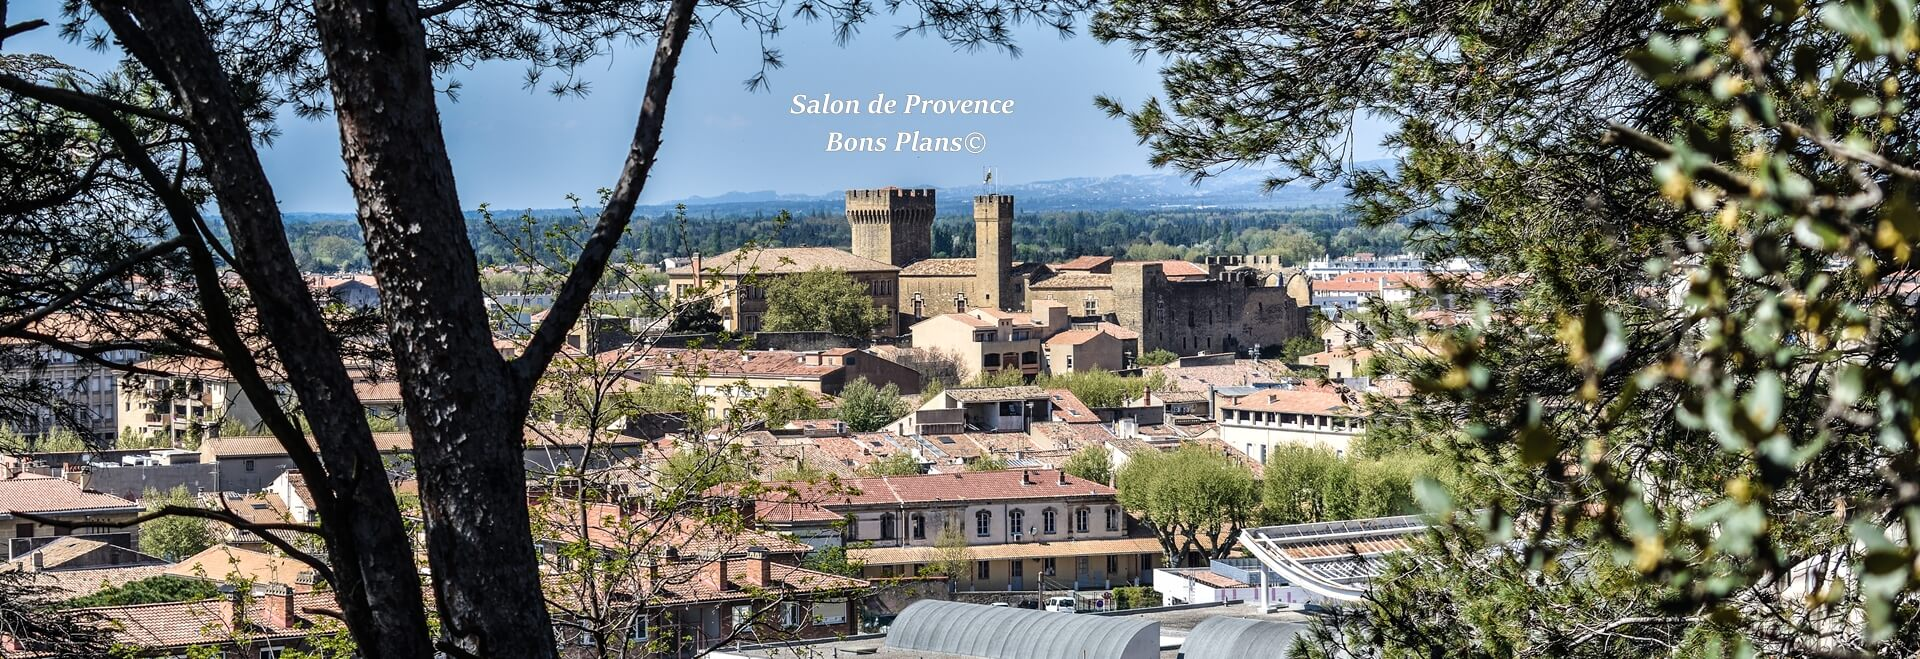 Salon-de-Provence bons plans